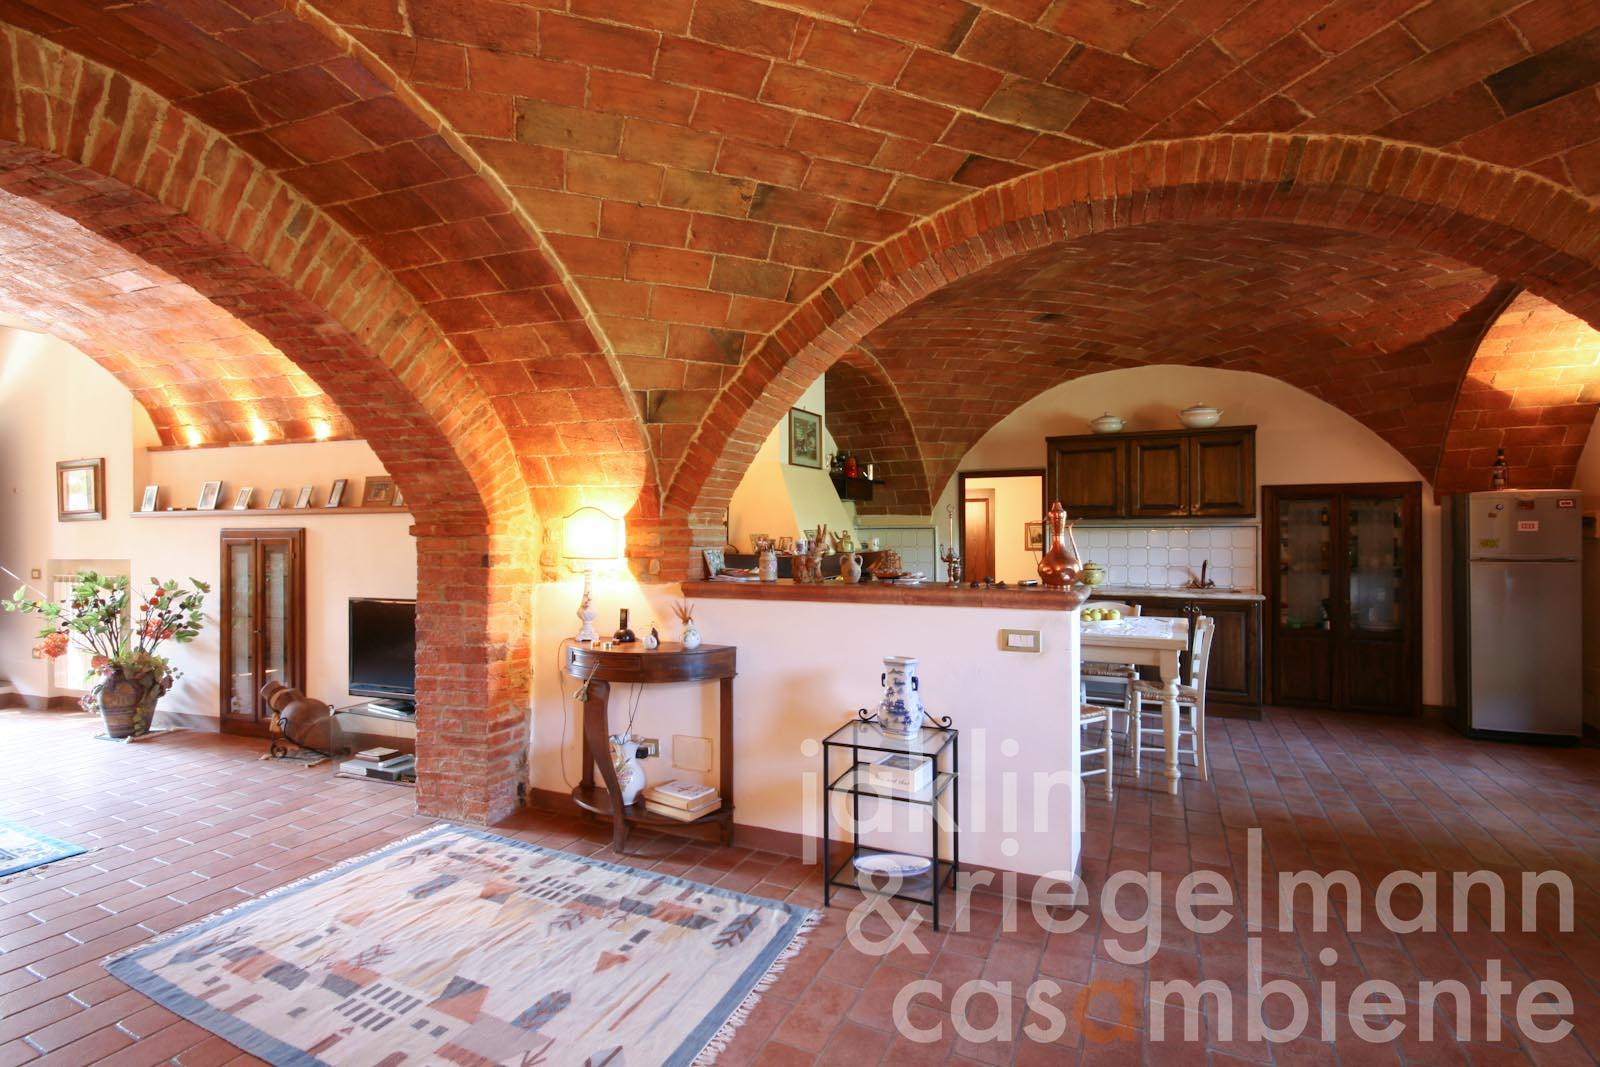 The restored country house for sale with vaulted ceilings, annexe and pool in Tuscany